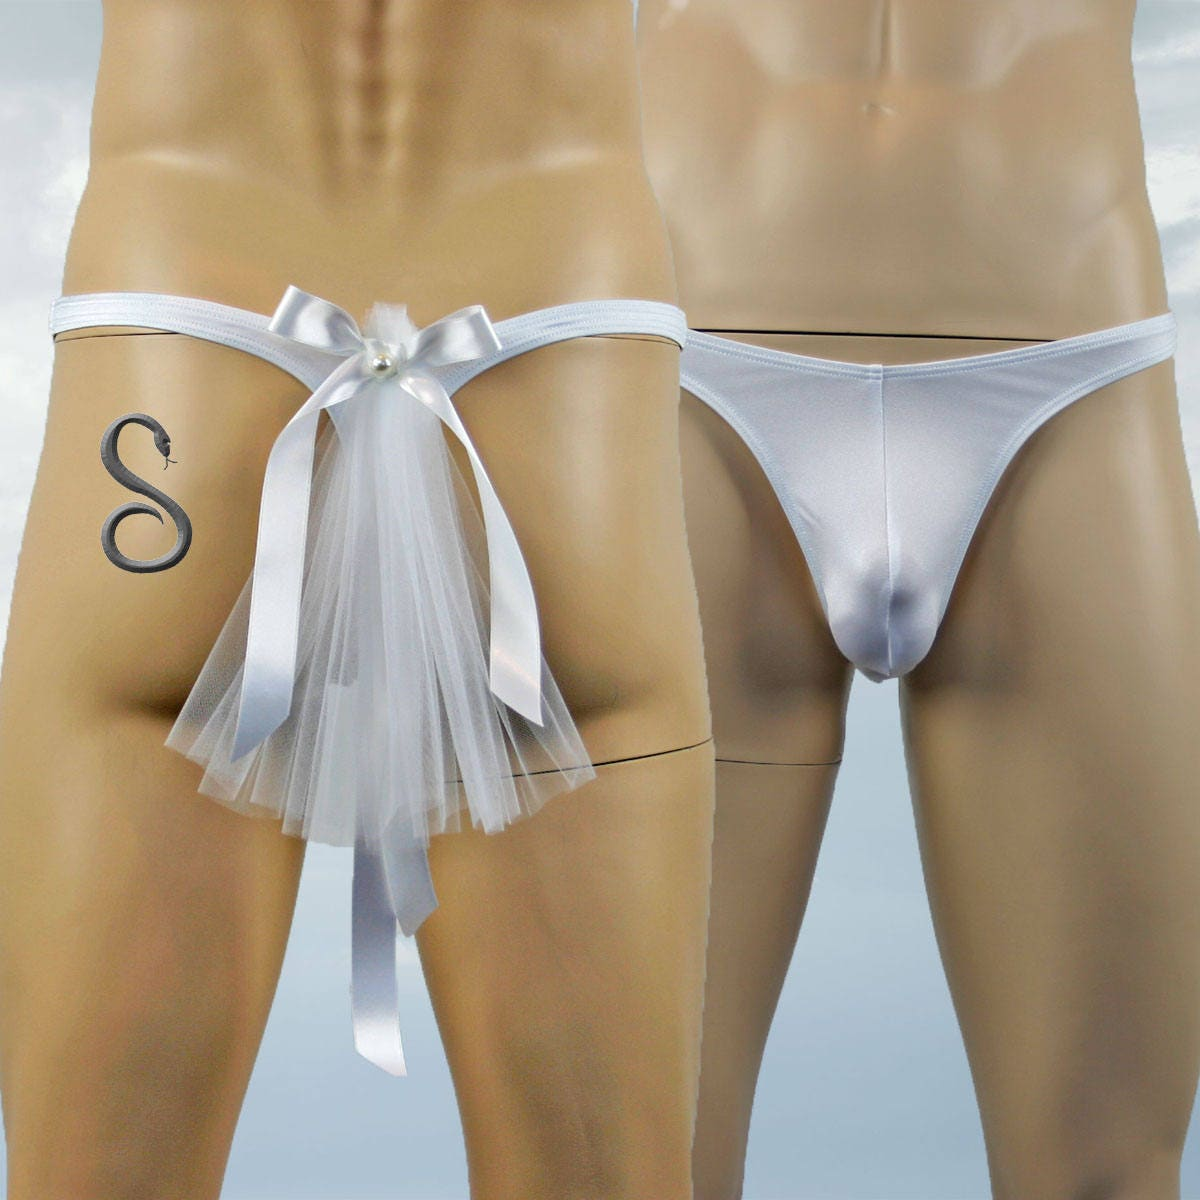 7b22e5bdd Mens Bridal Wedding G string Thong Underwear Lingerie with Veil. gallery  photo ...